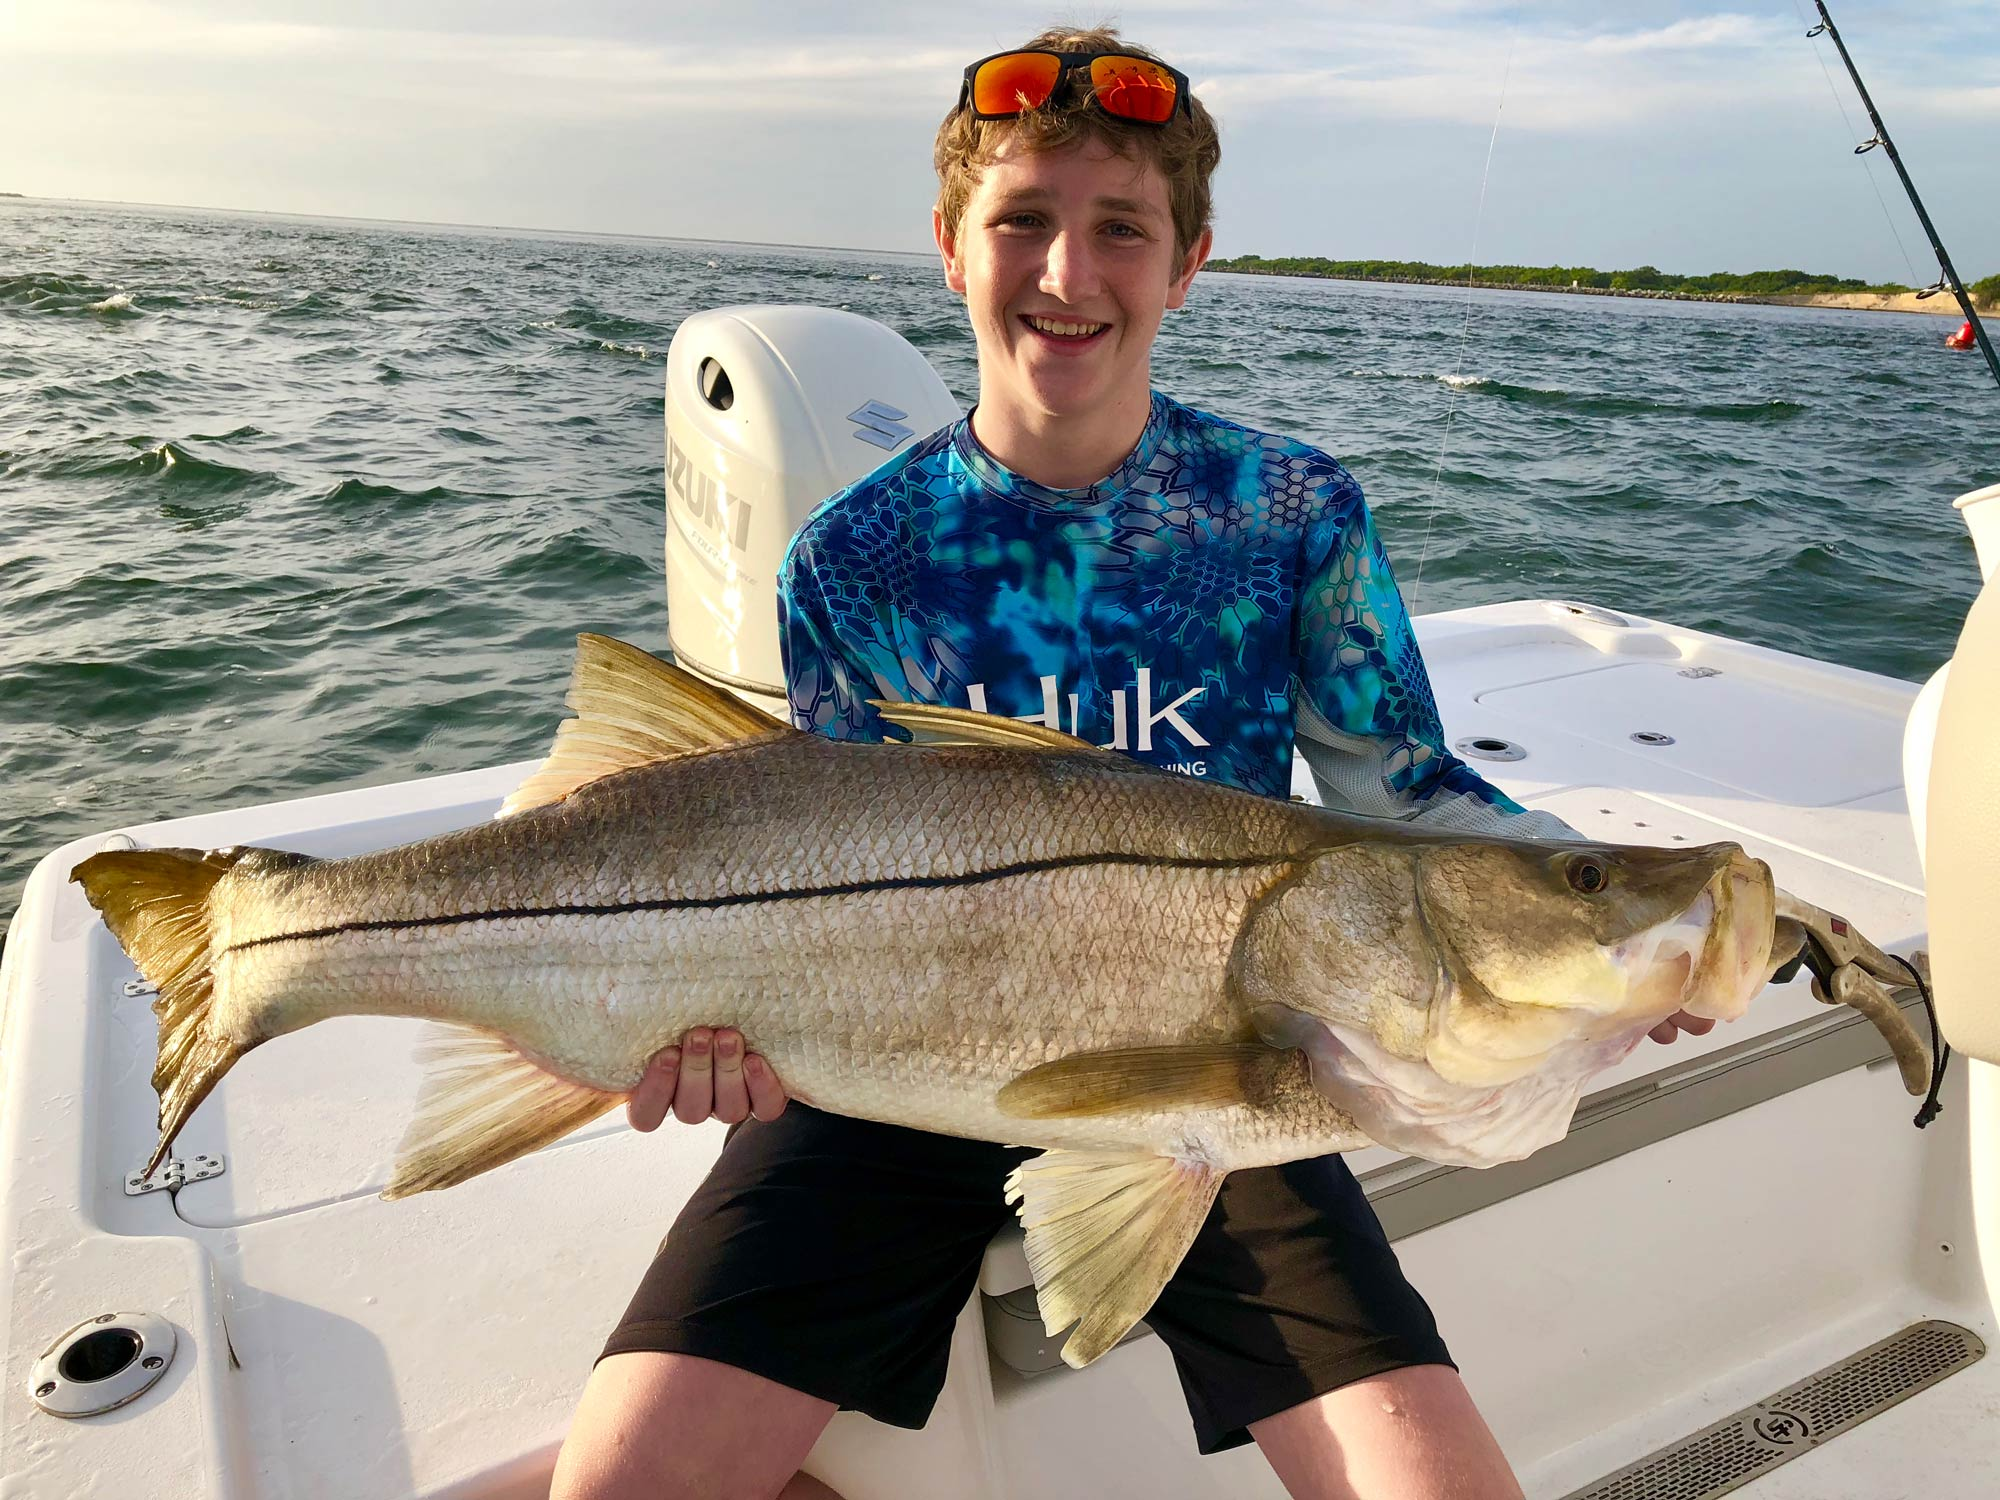 Smiling young angler holding a huge snook on a boat